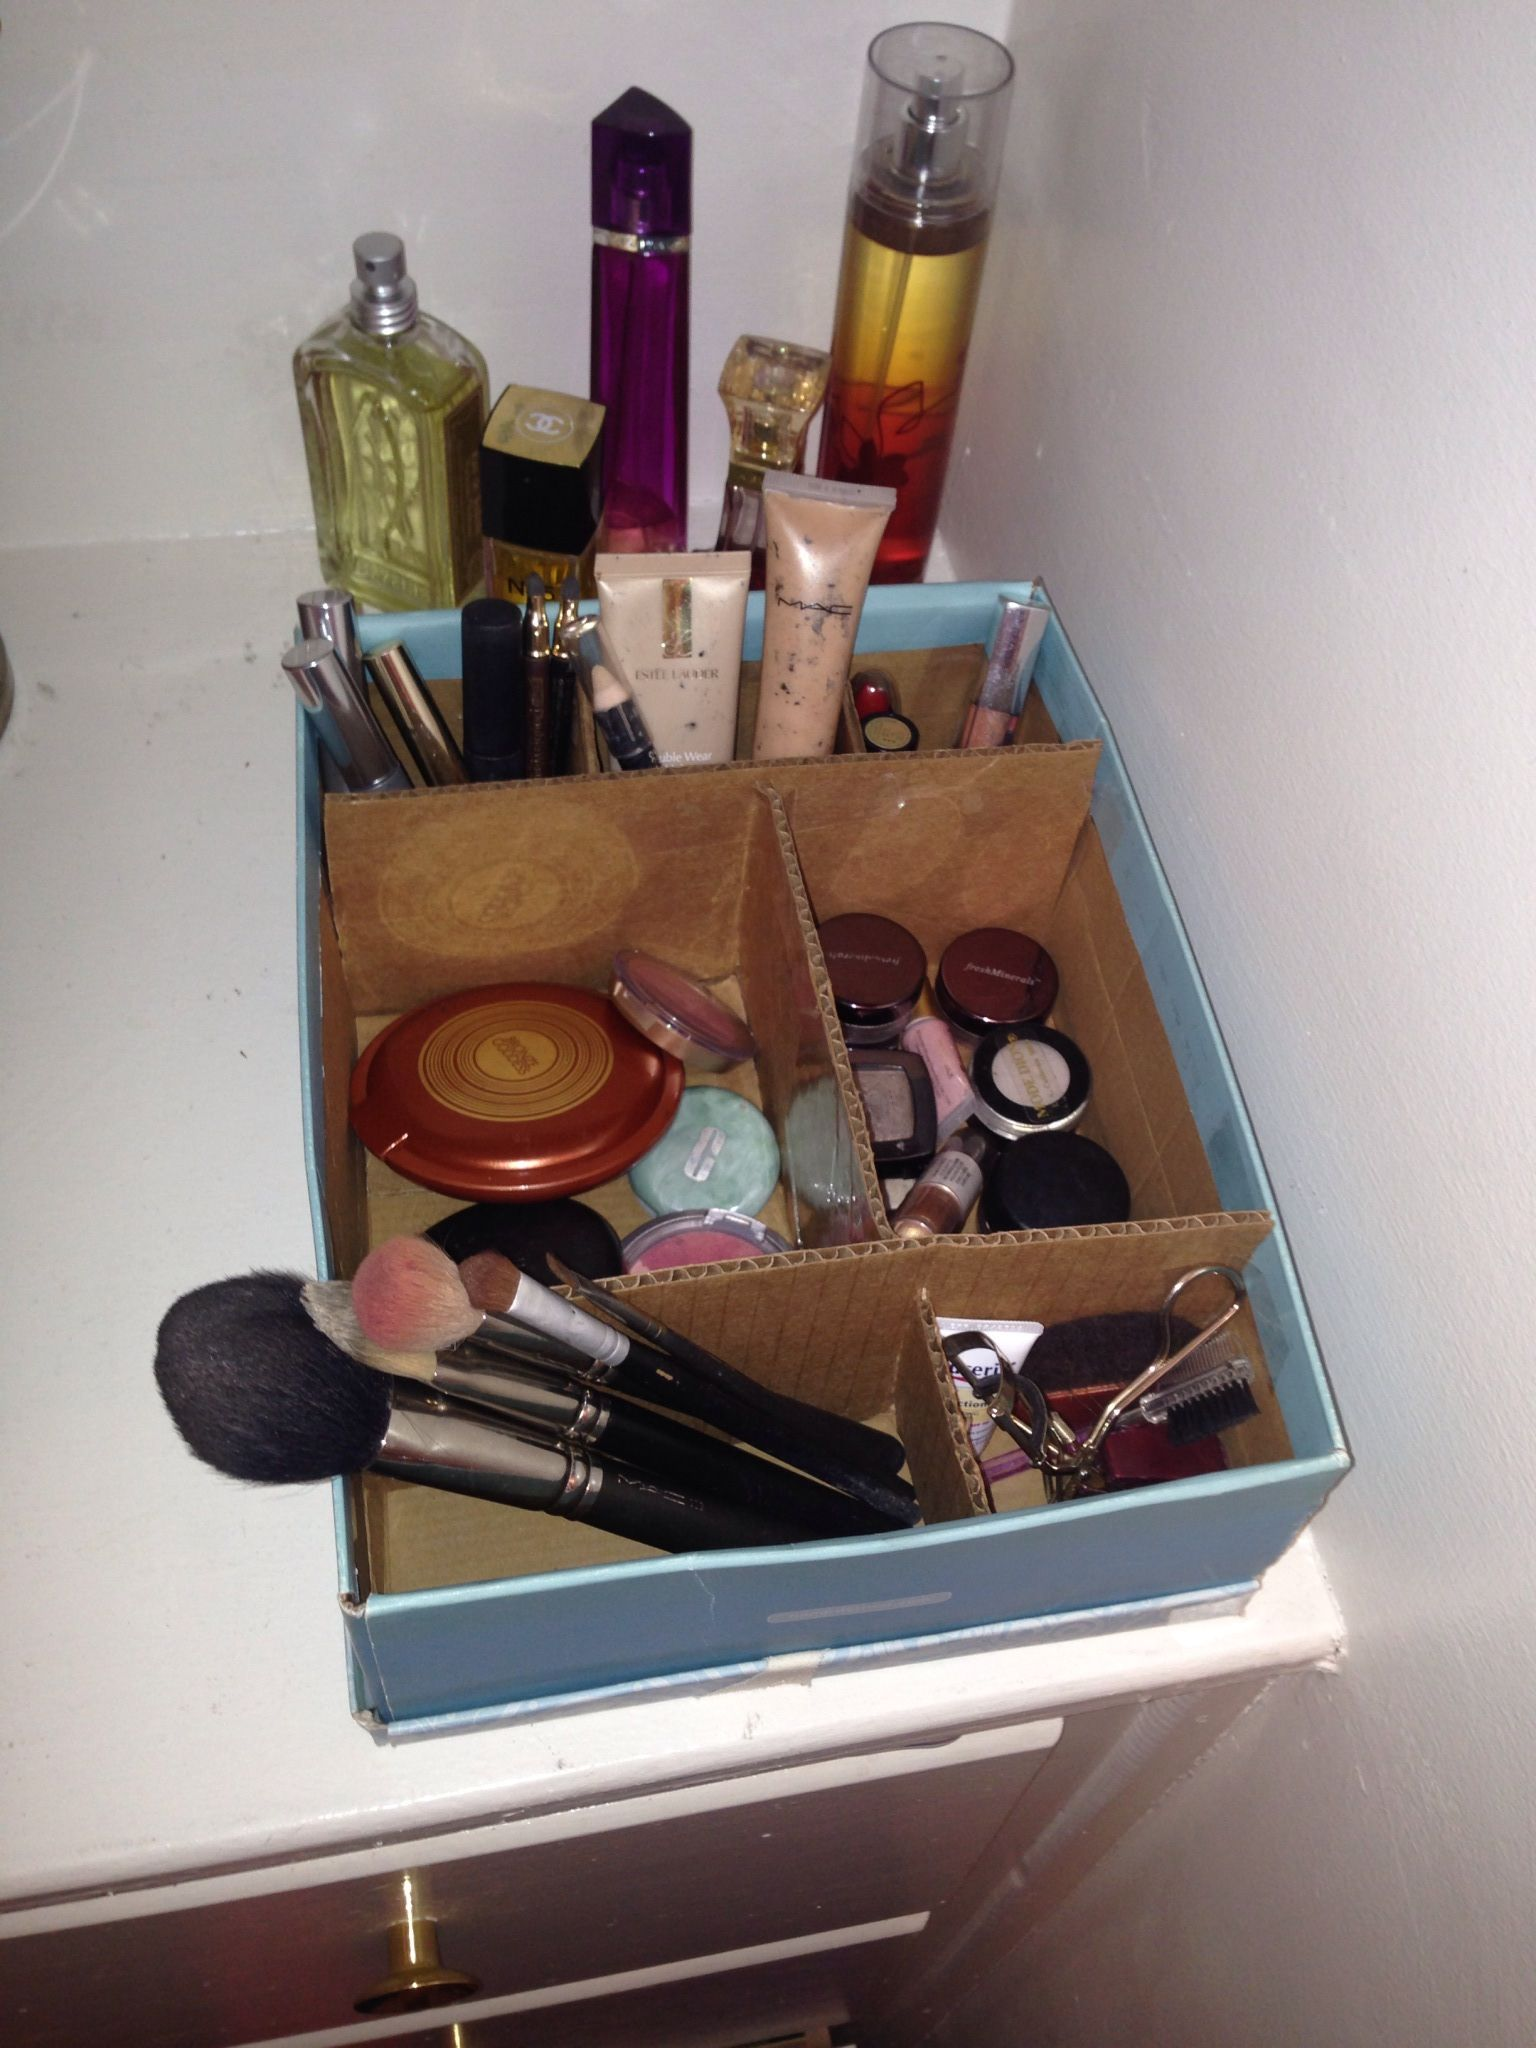 Diy Makeup Organizer Idea I Had That Worked For Me Shoe Box